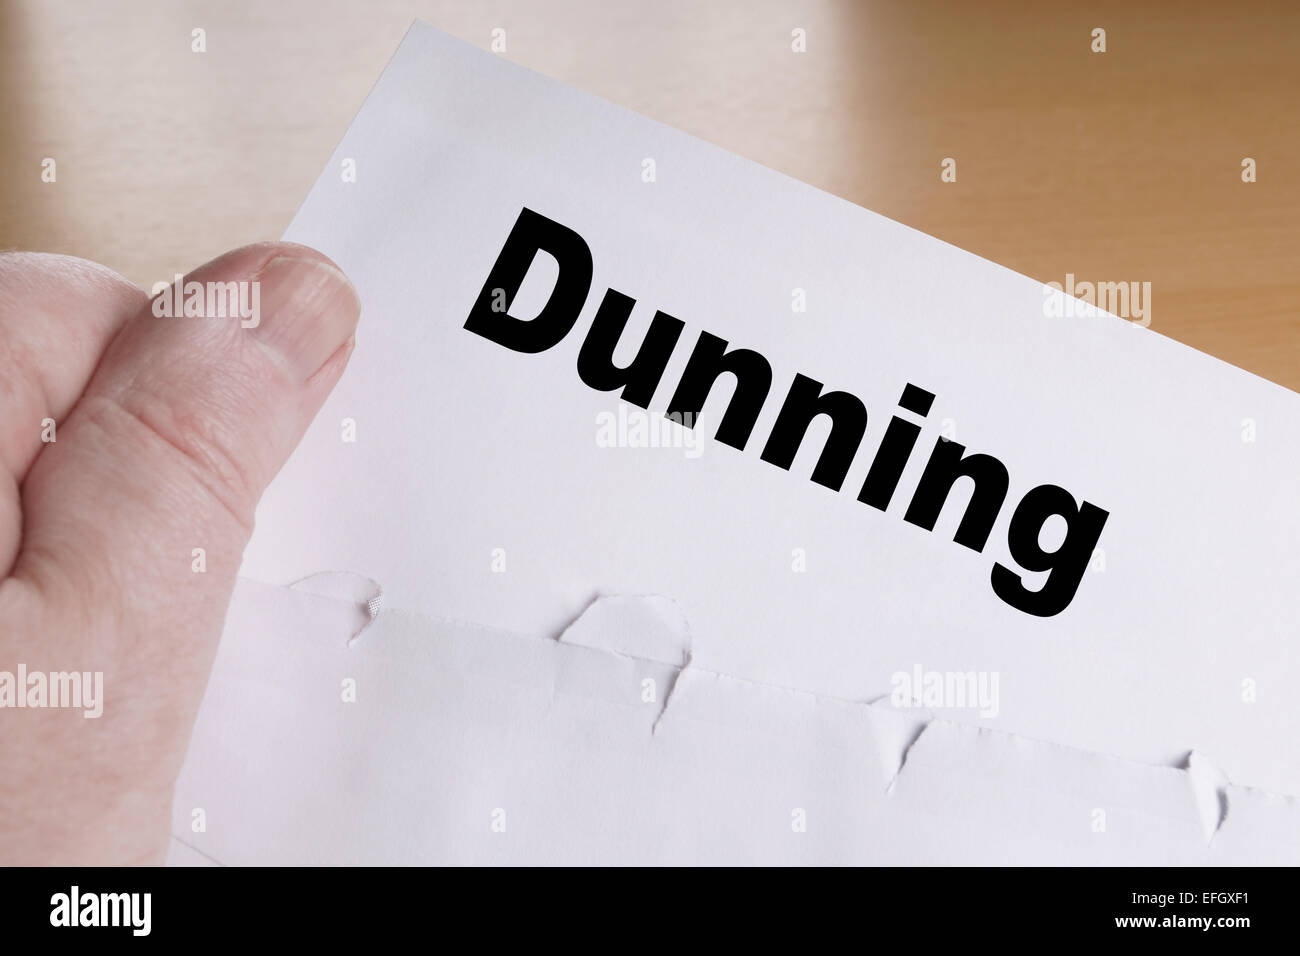 dunning letter - Stock Image